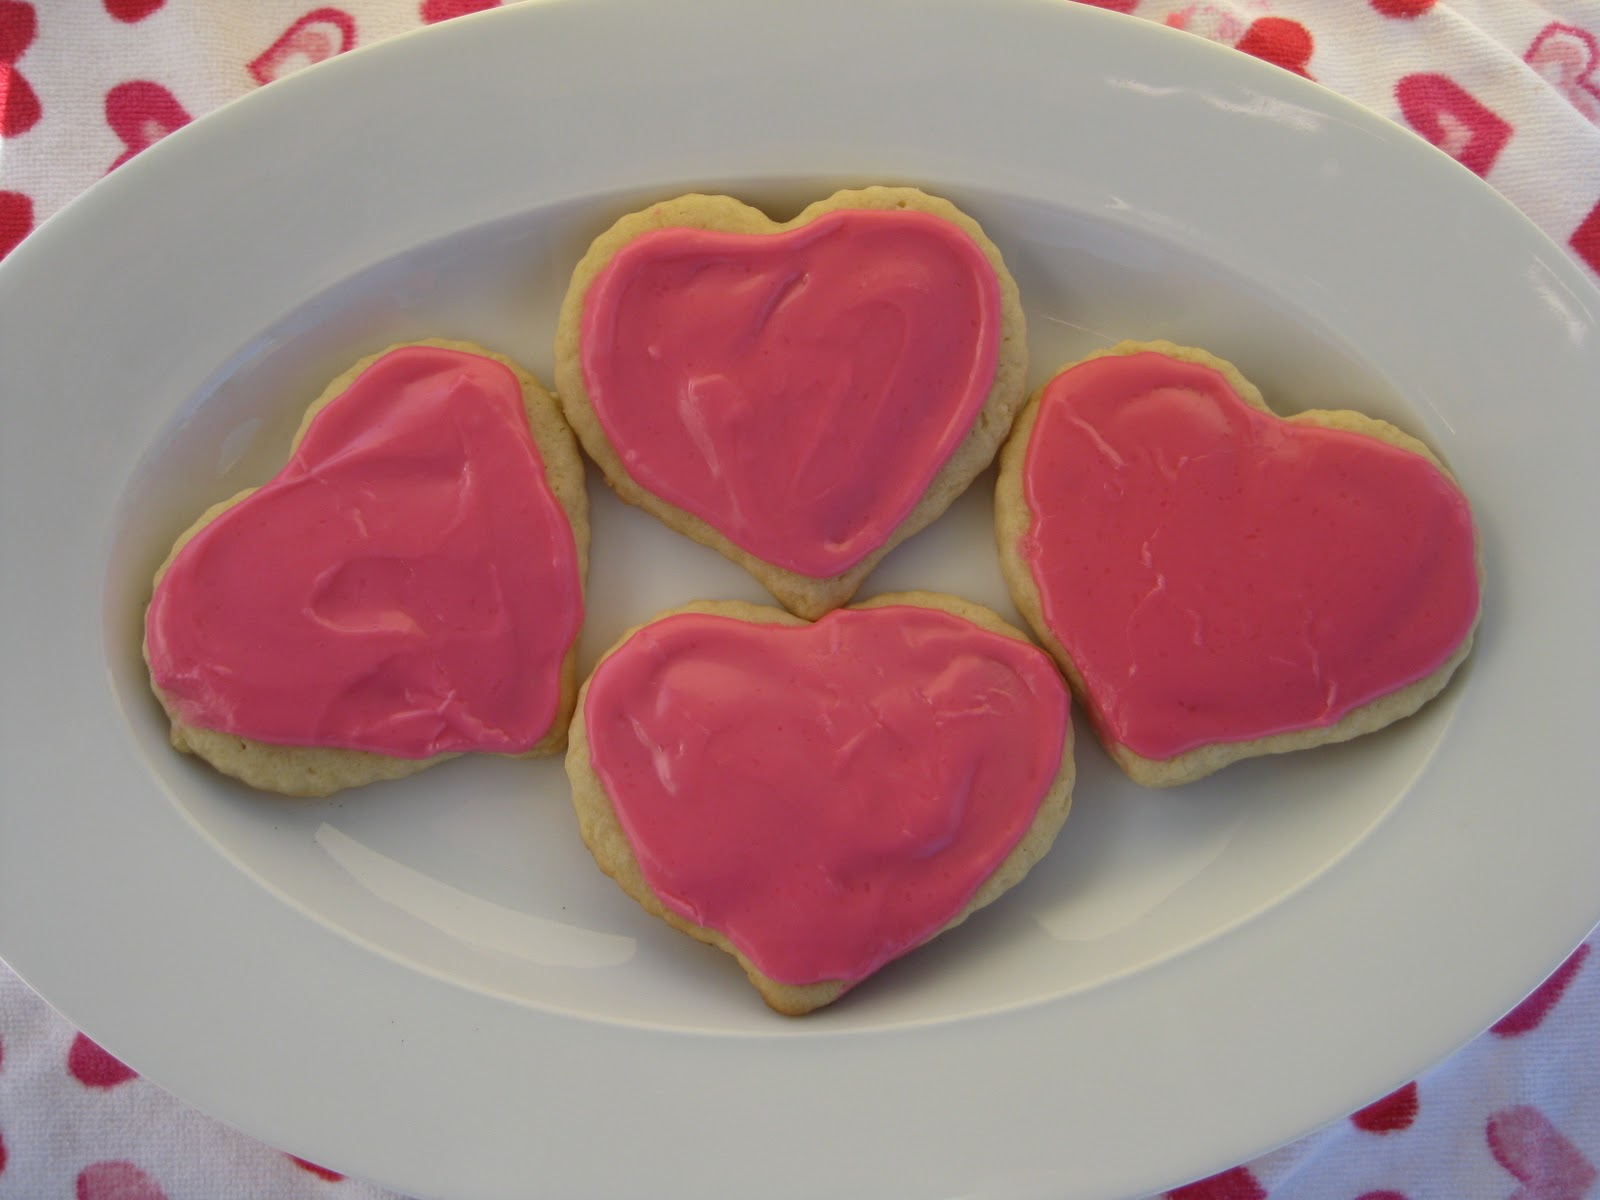 Heidi's Recipes: Valentine's Sugar Cookies Recipe